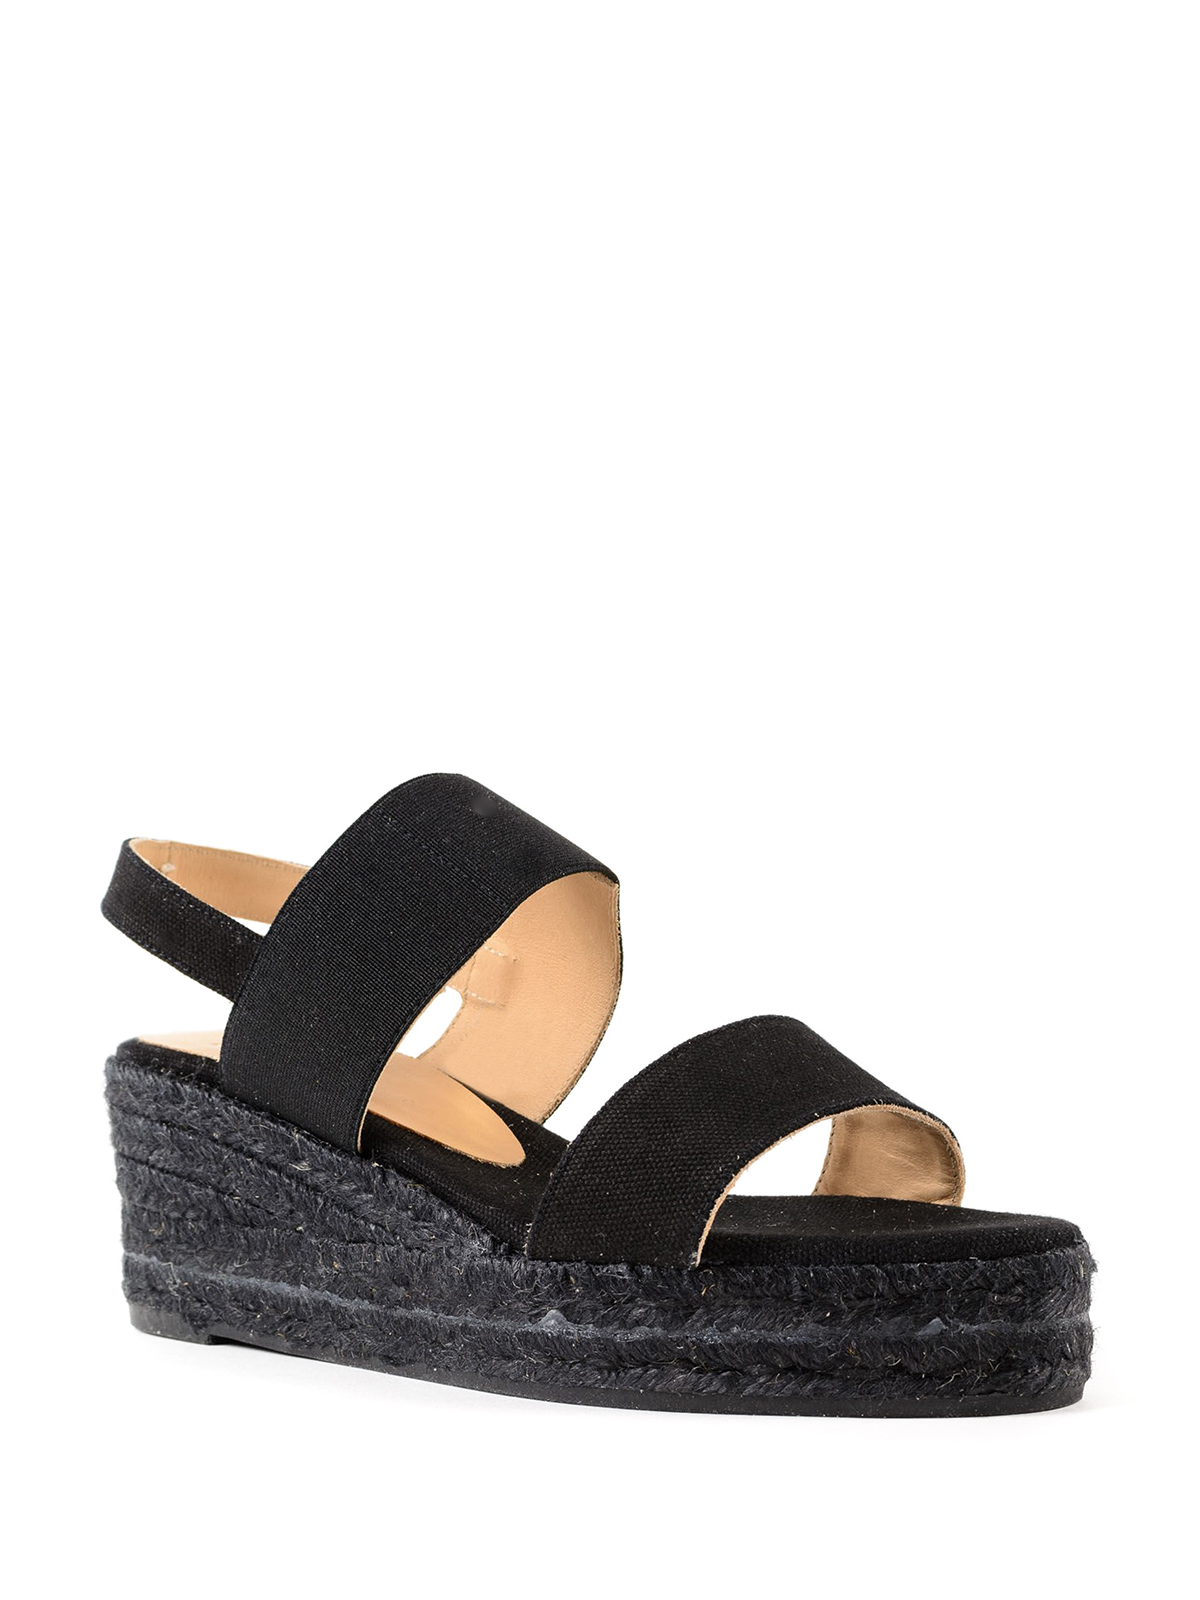 Bonsai espadrilles - Black Castaner